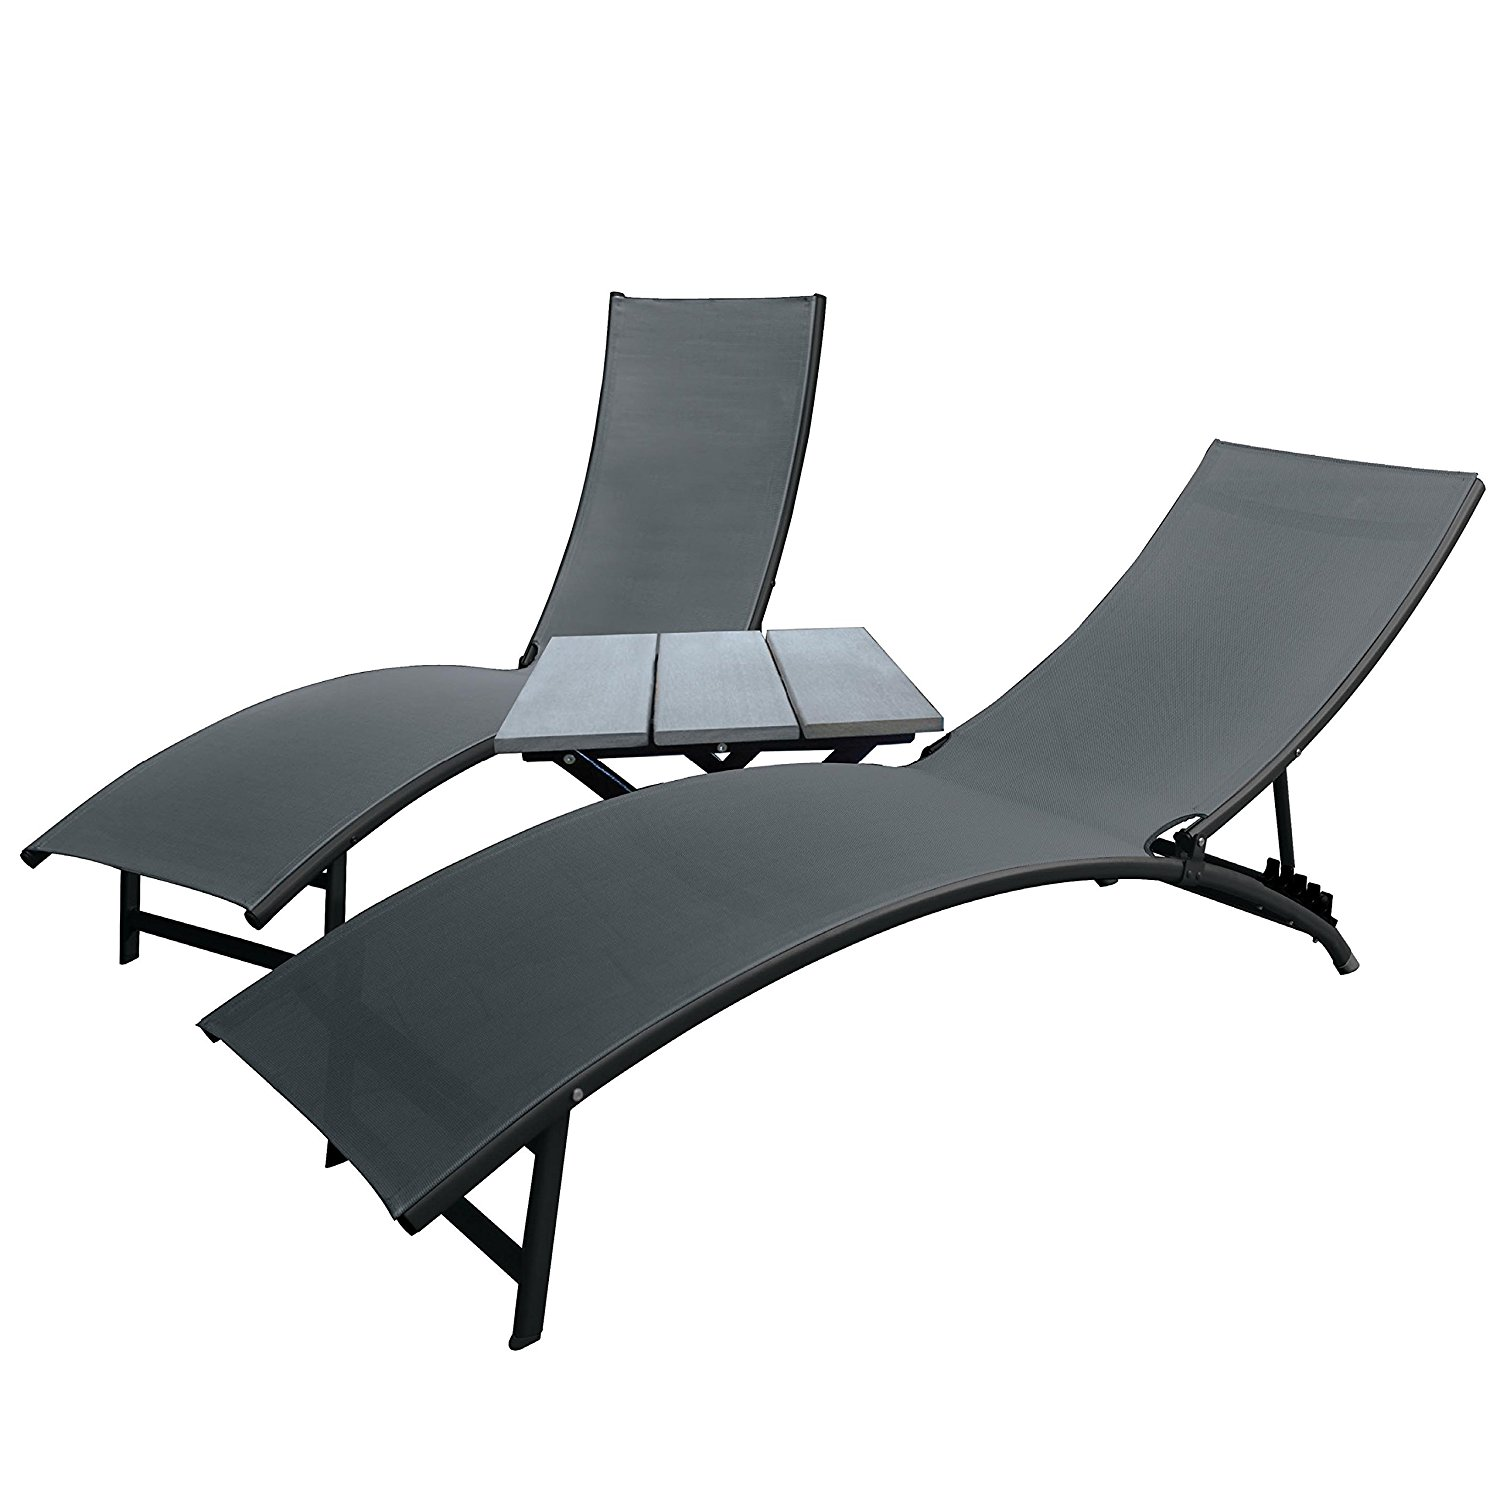 Floor Lounger | Orbital Lounger | Patio Lounger